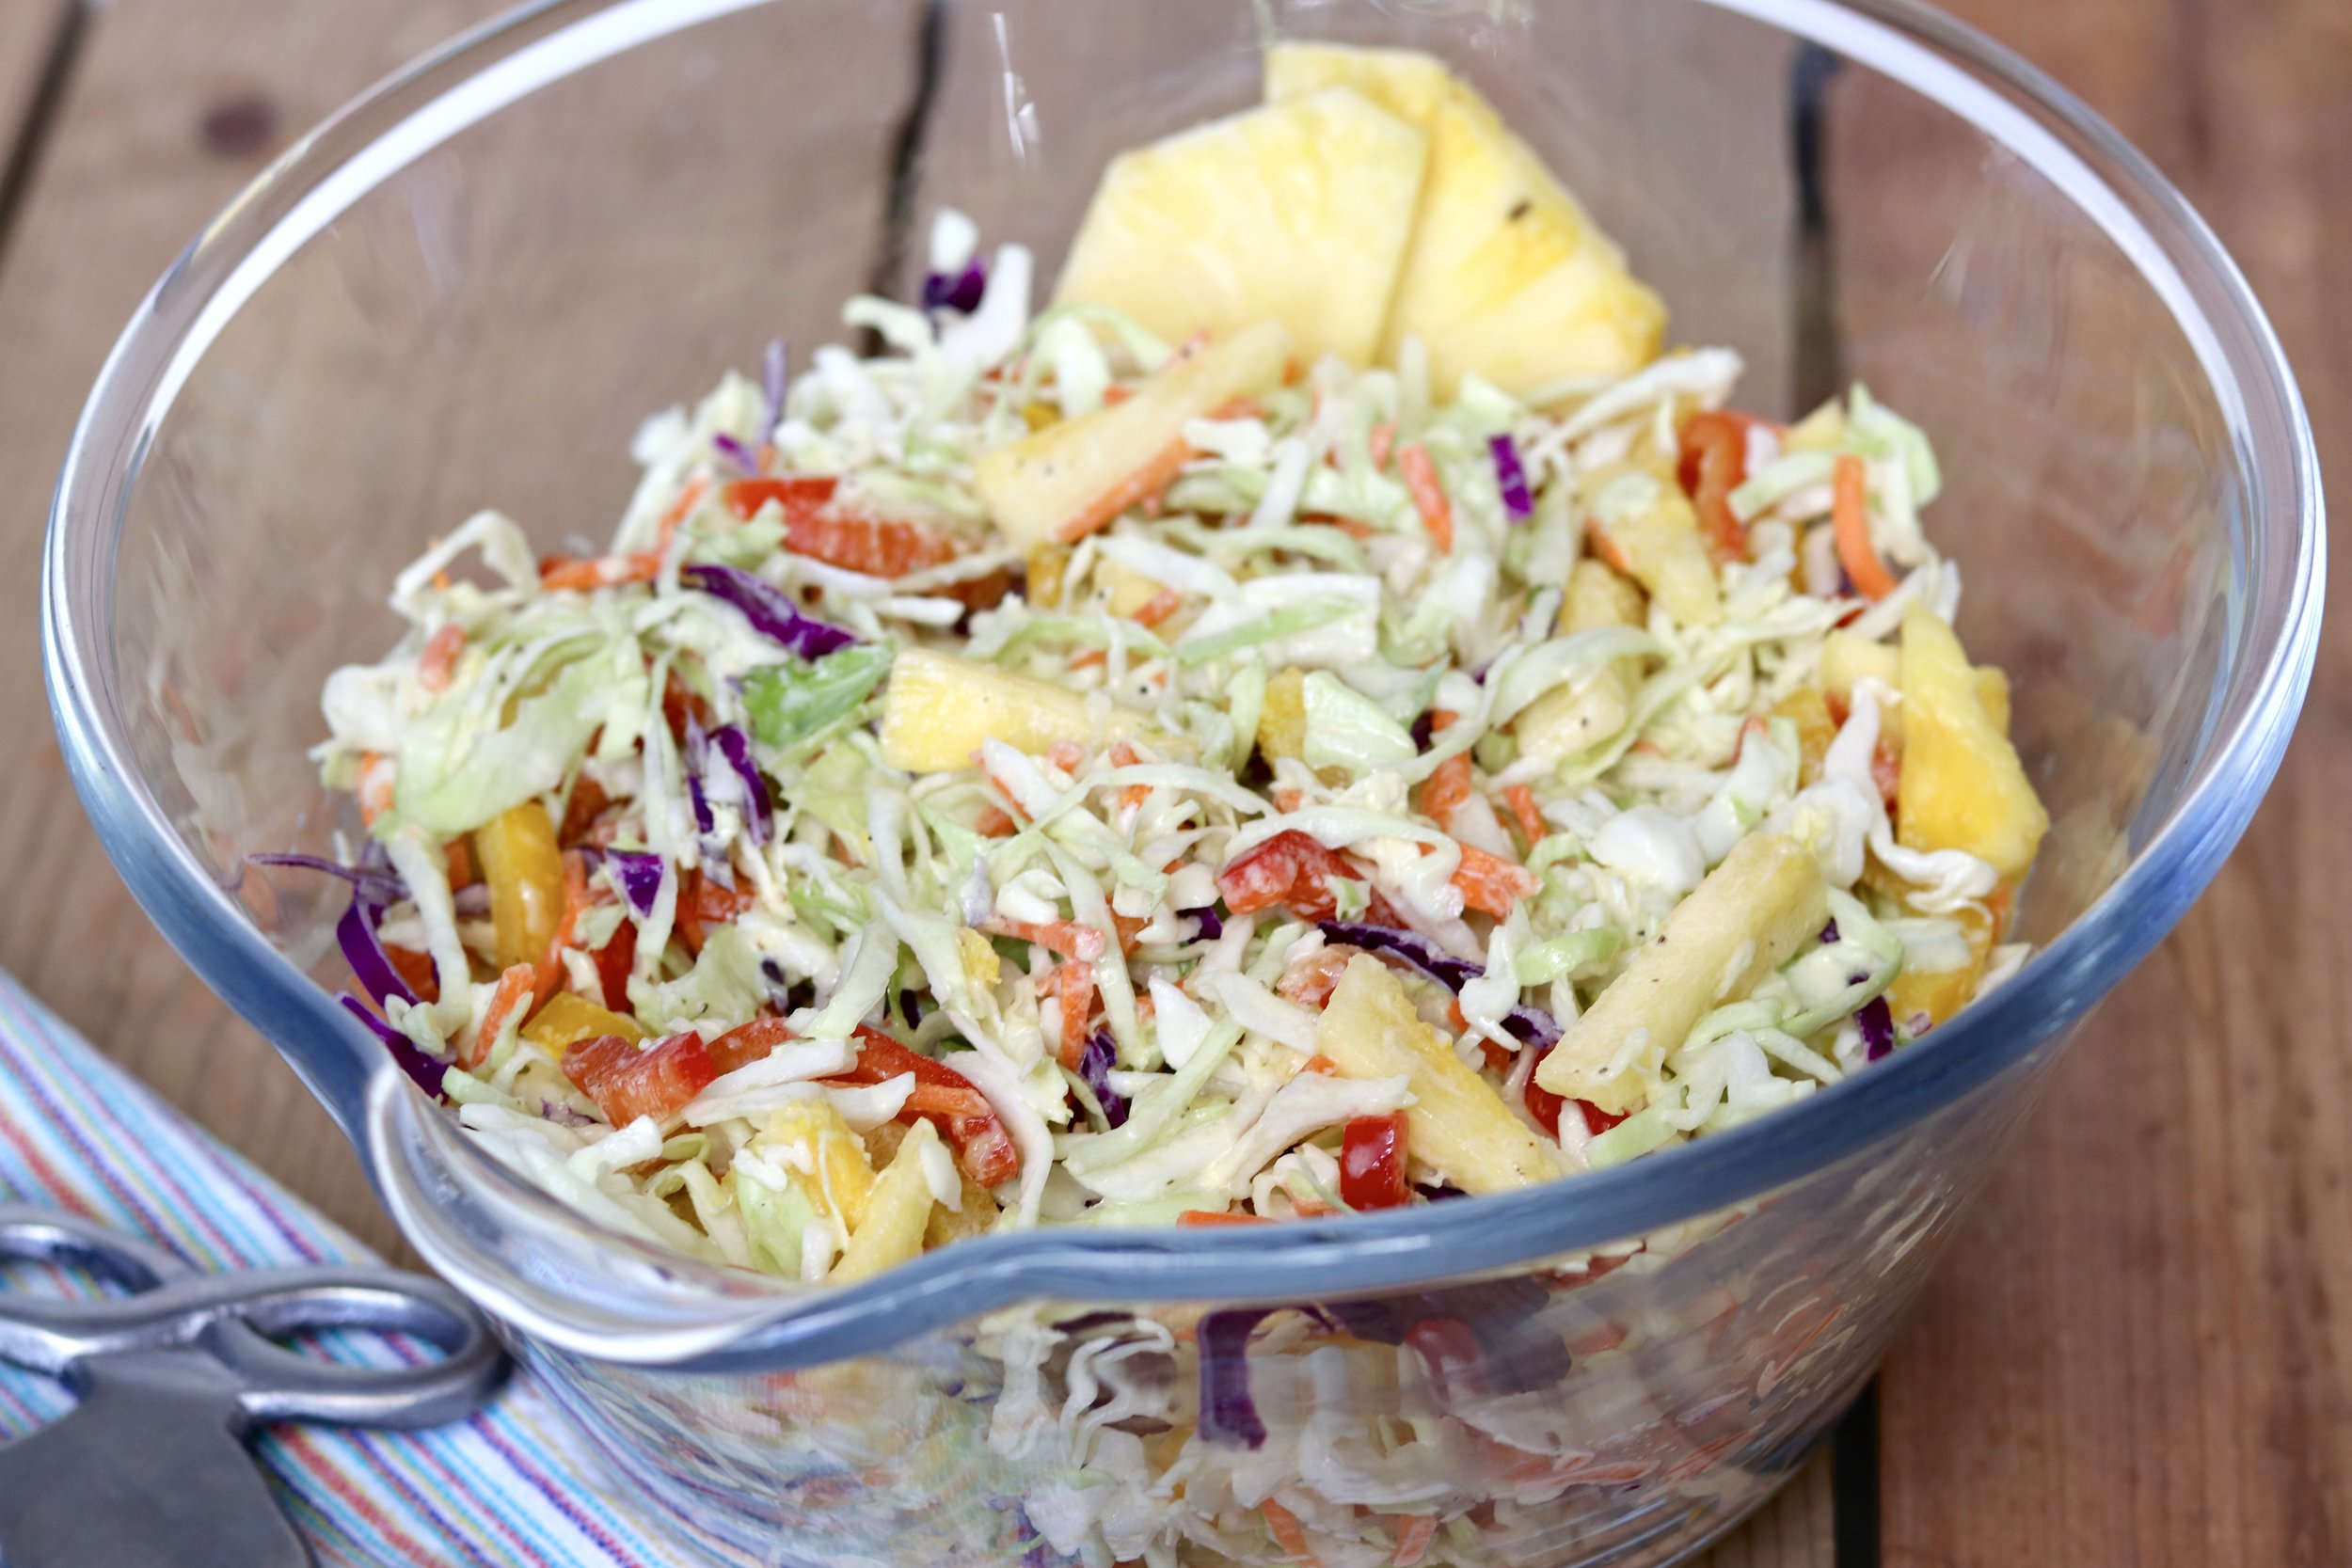 Pineapple Coleslaw I'd Eat That Food